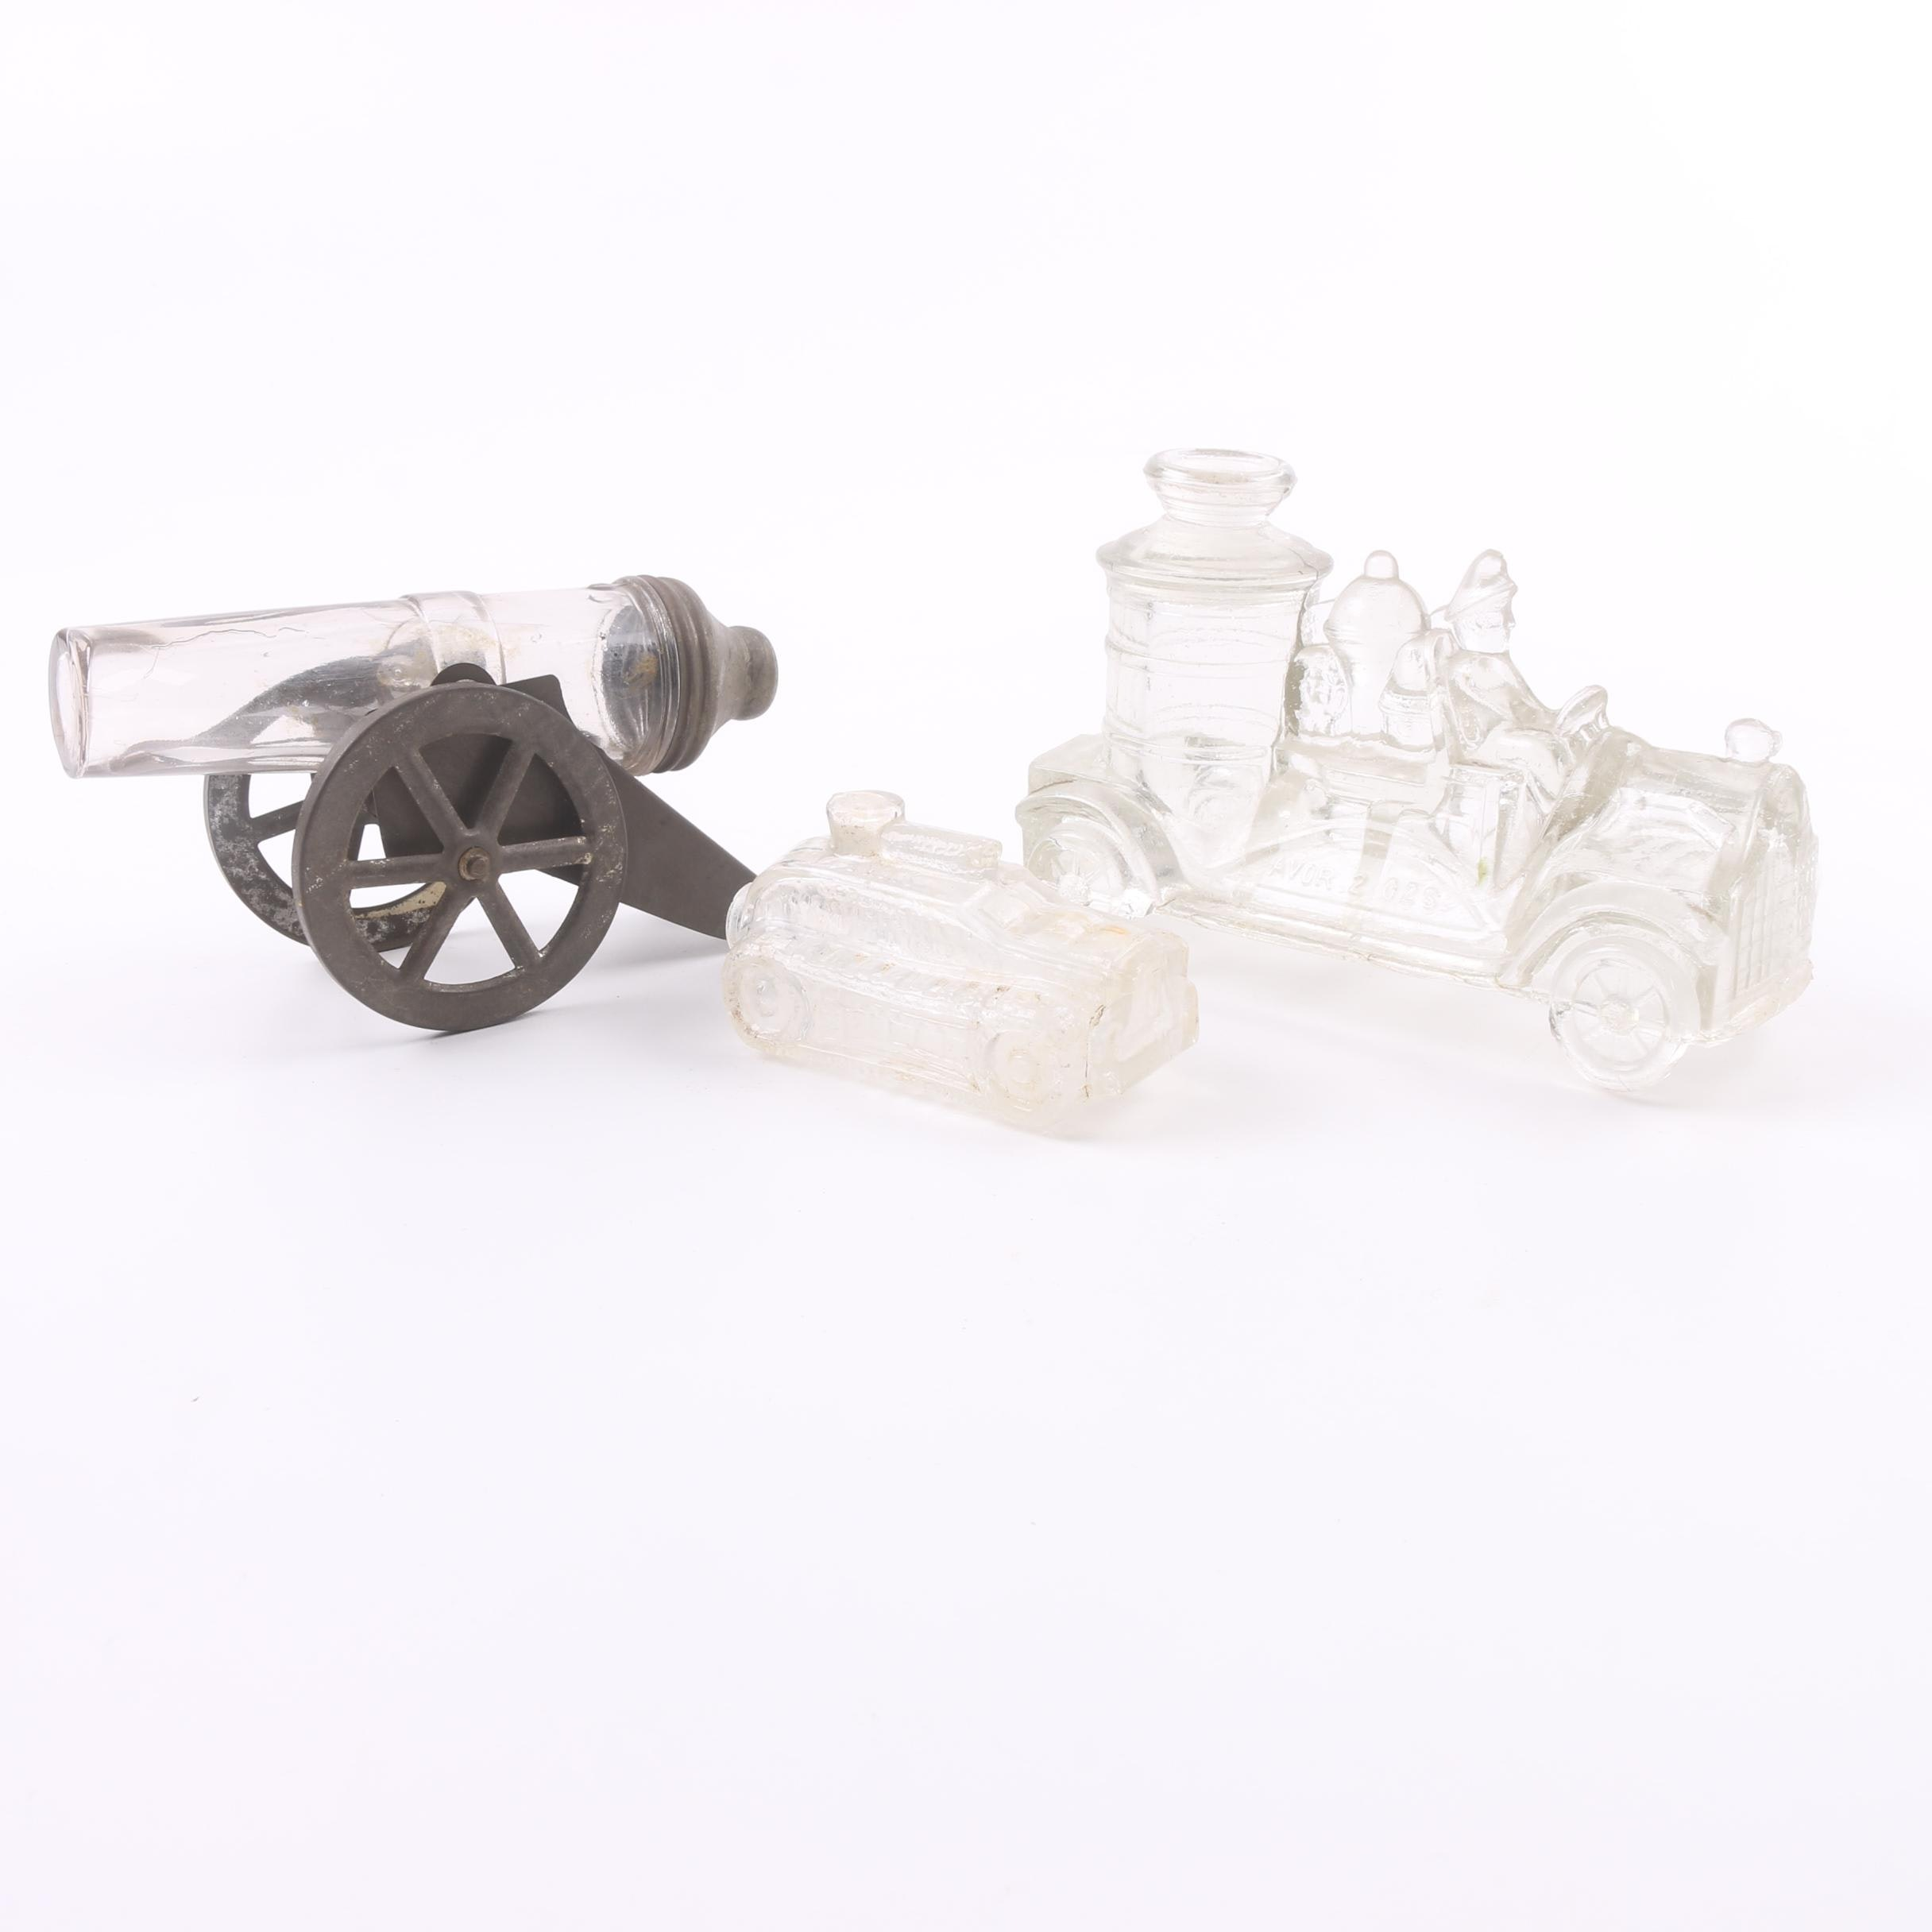 Early 20th Century Pressed Glass Figural Candy Canisters Including Cannon